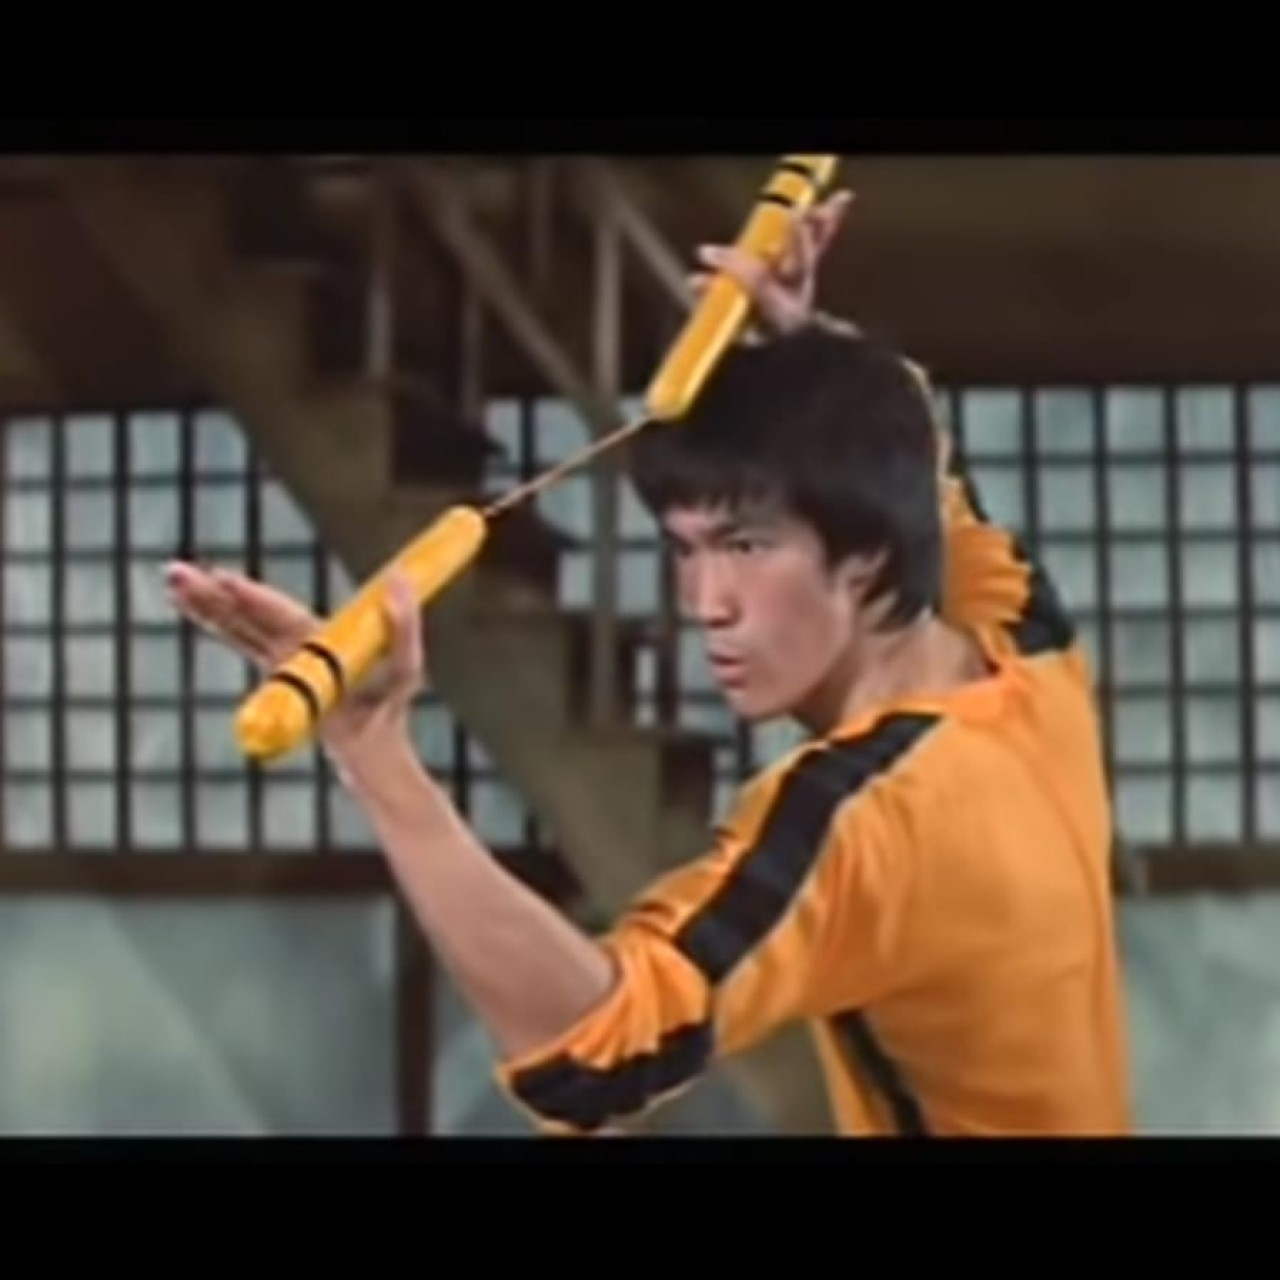 List of Fury: 75 things you didn't know about Bruce Lee